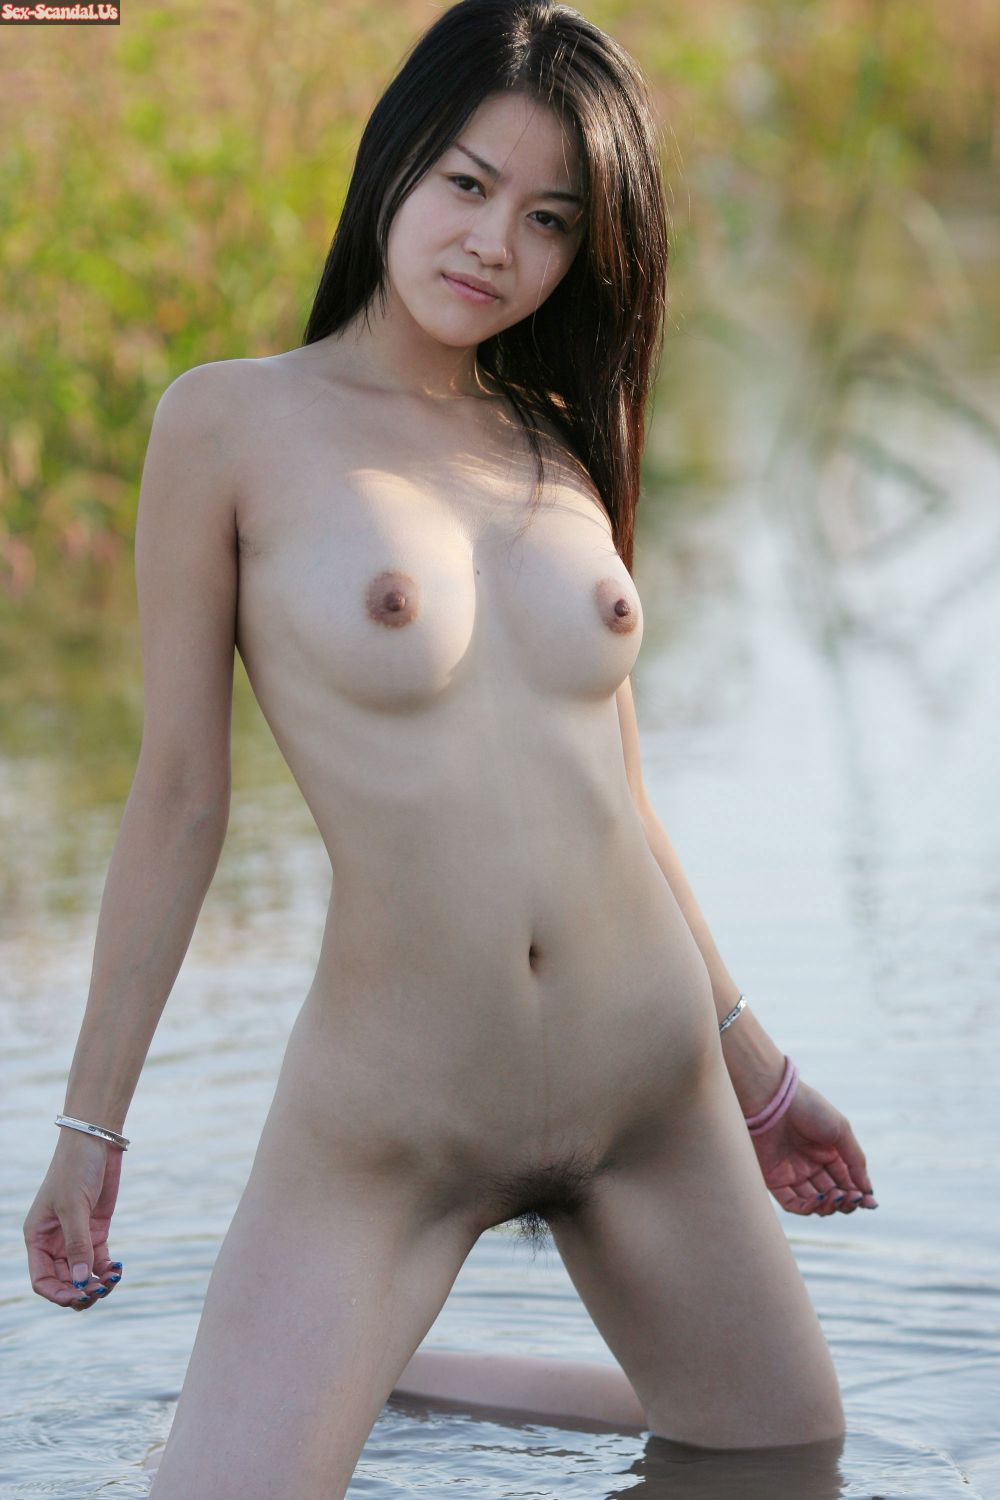 Hot Chinese Girls PICS Nude ART By Model : Yang Fang